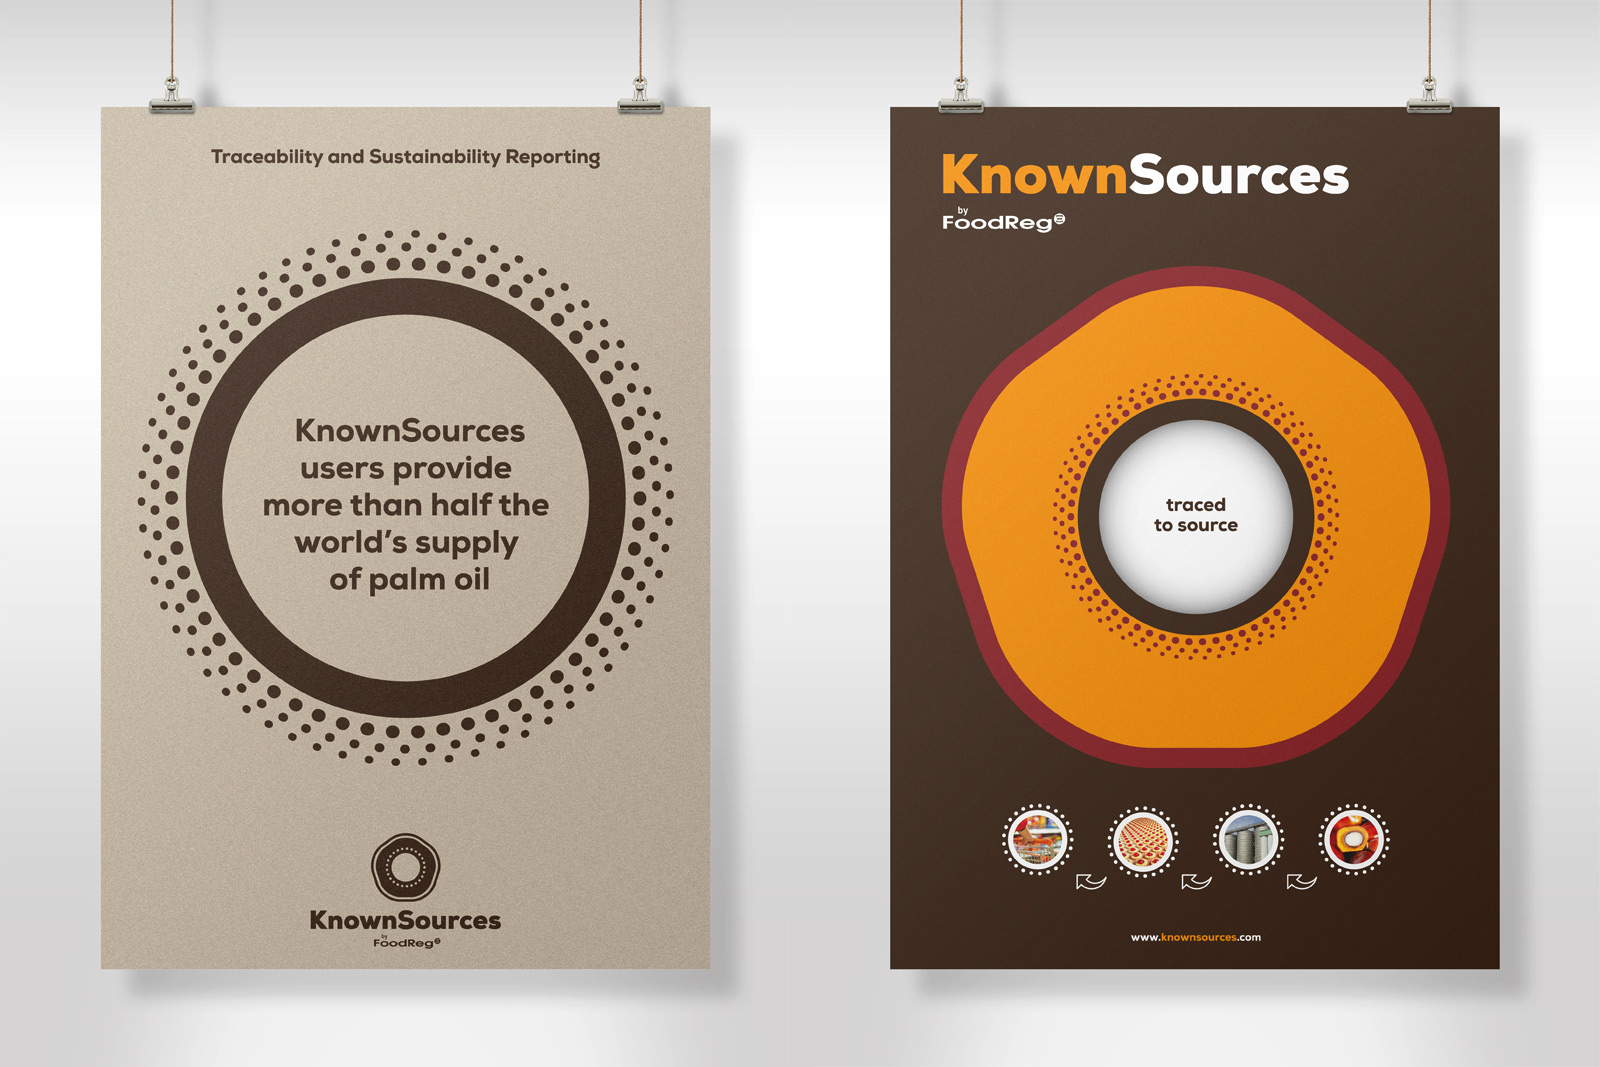 knownsources posters